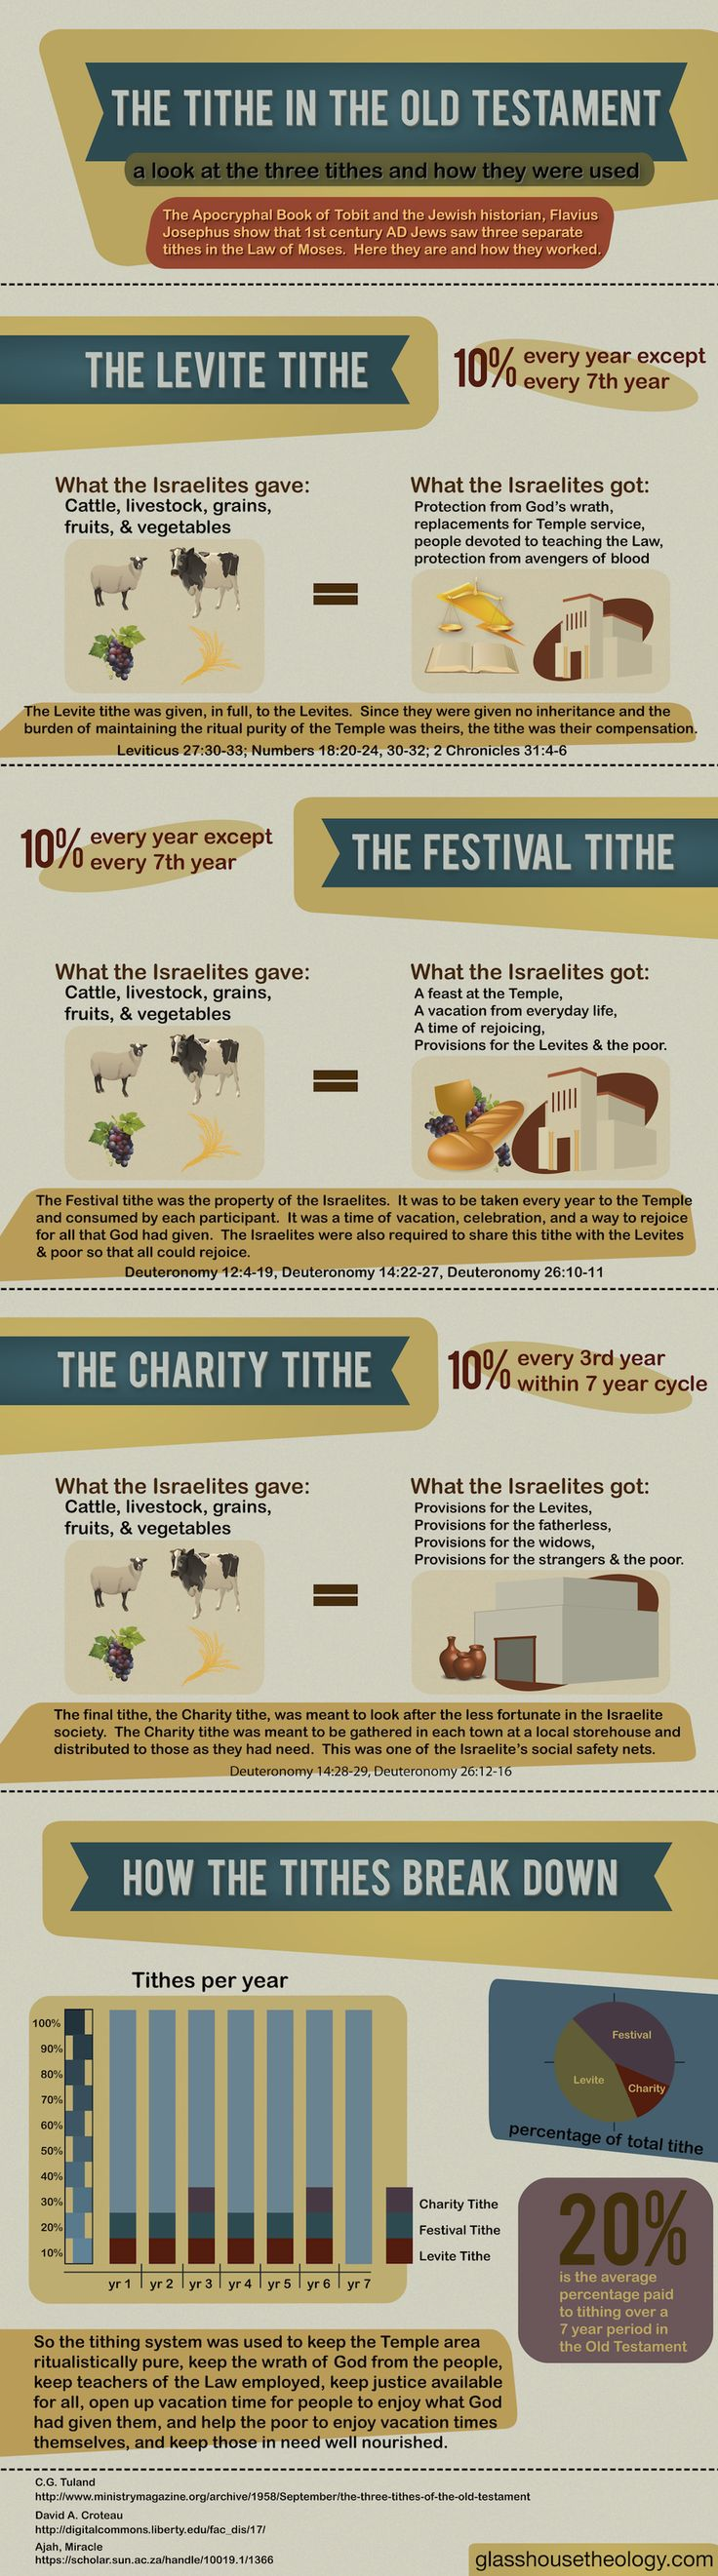 Excellent graphic work on Tithes by Ken Mafli. #Bible